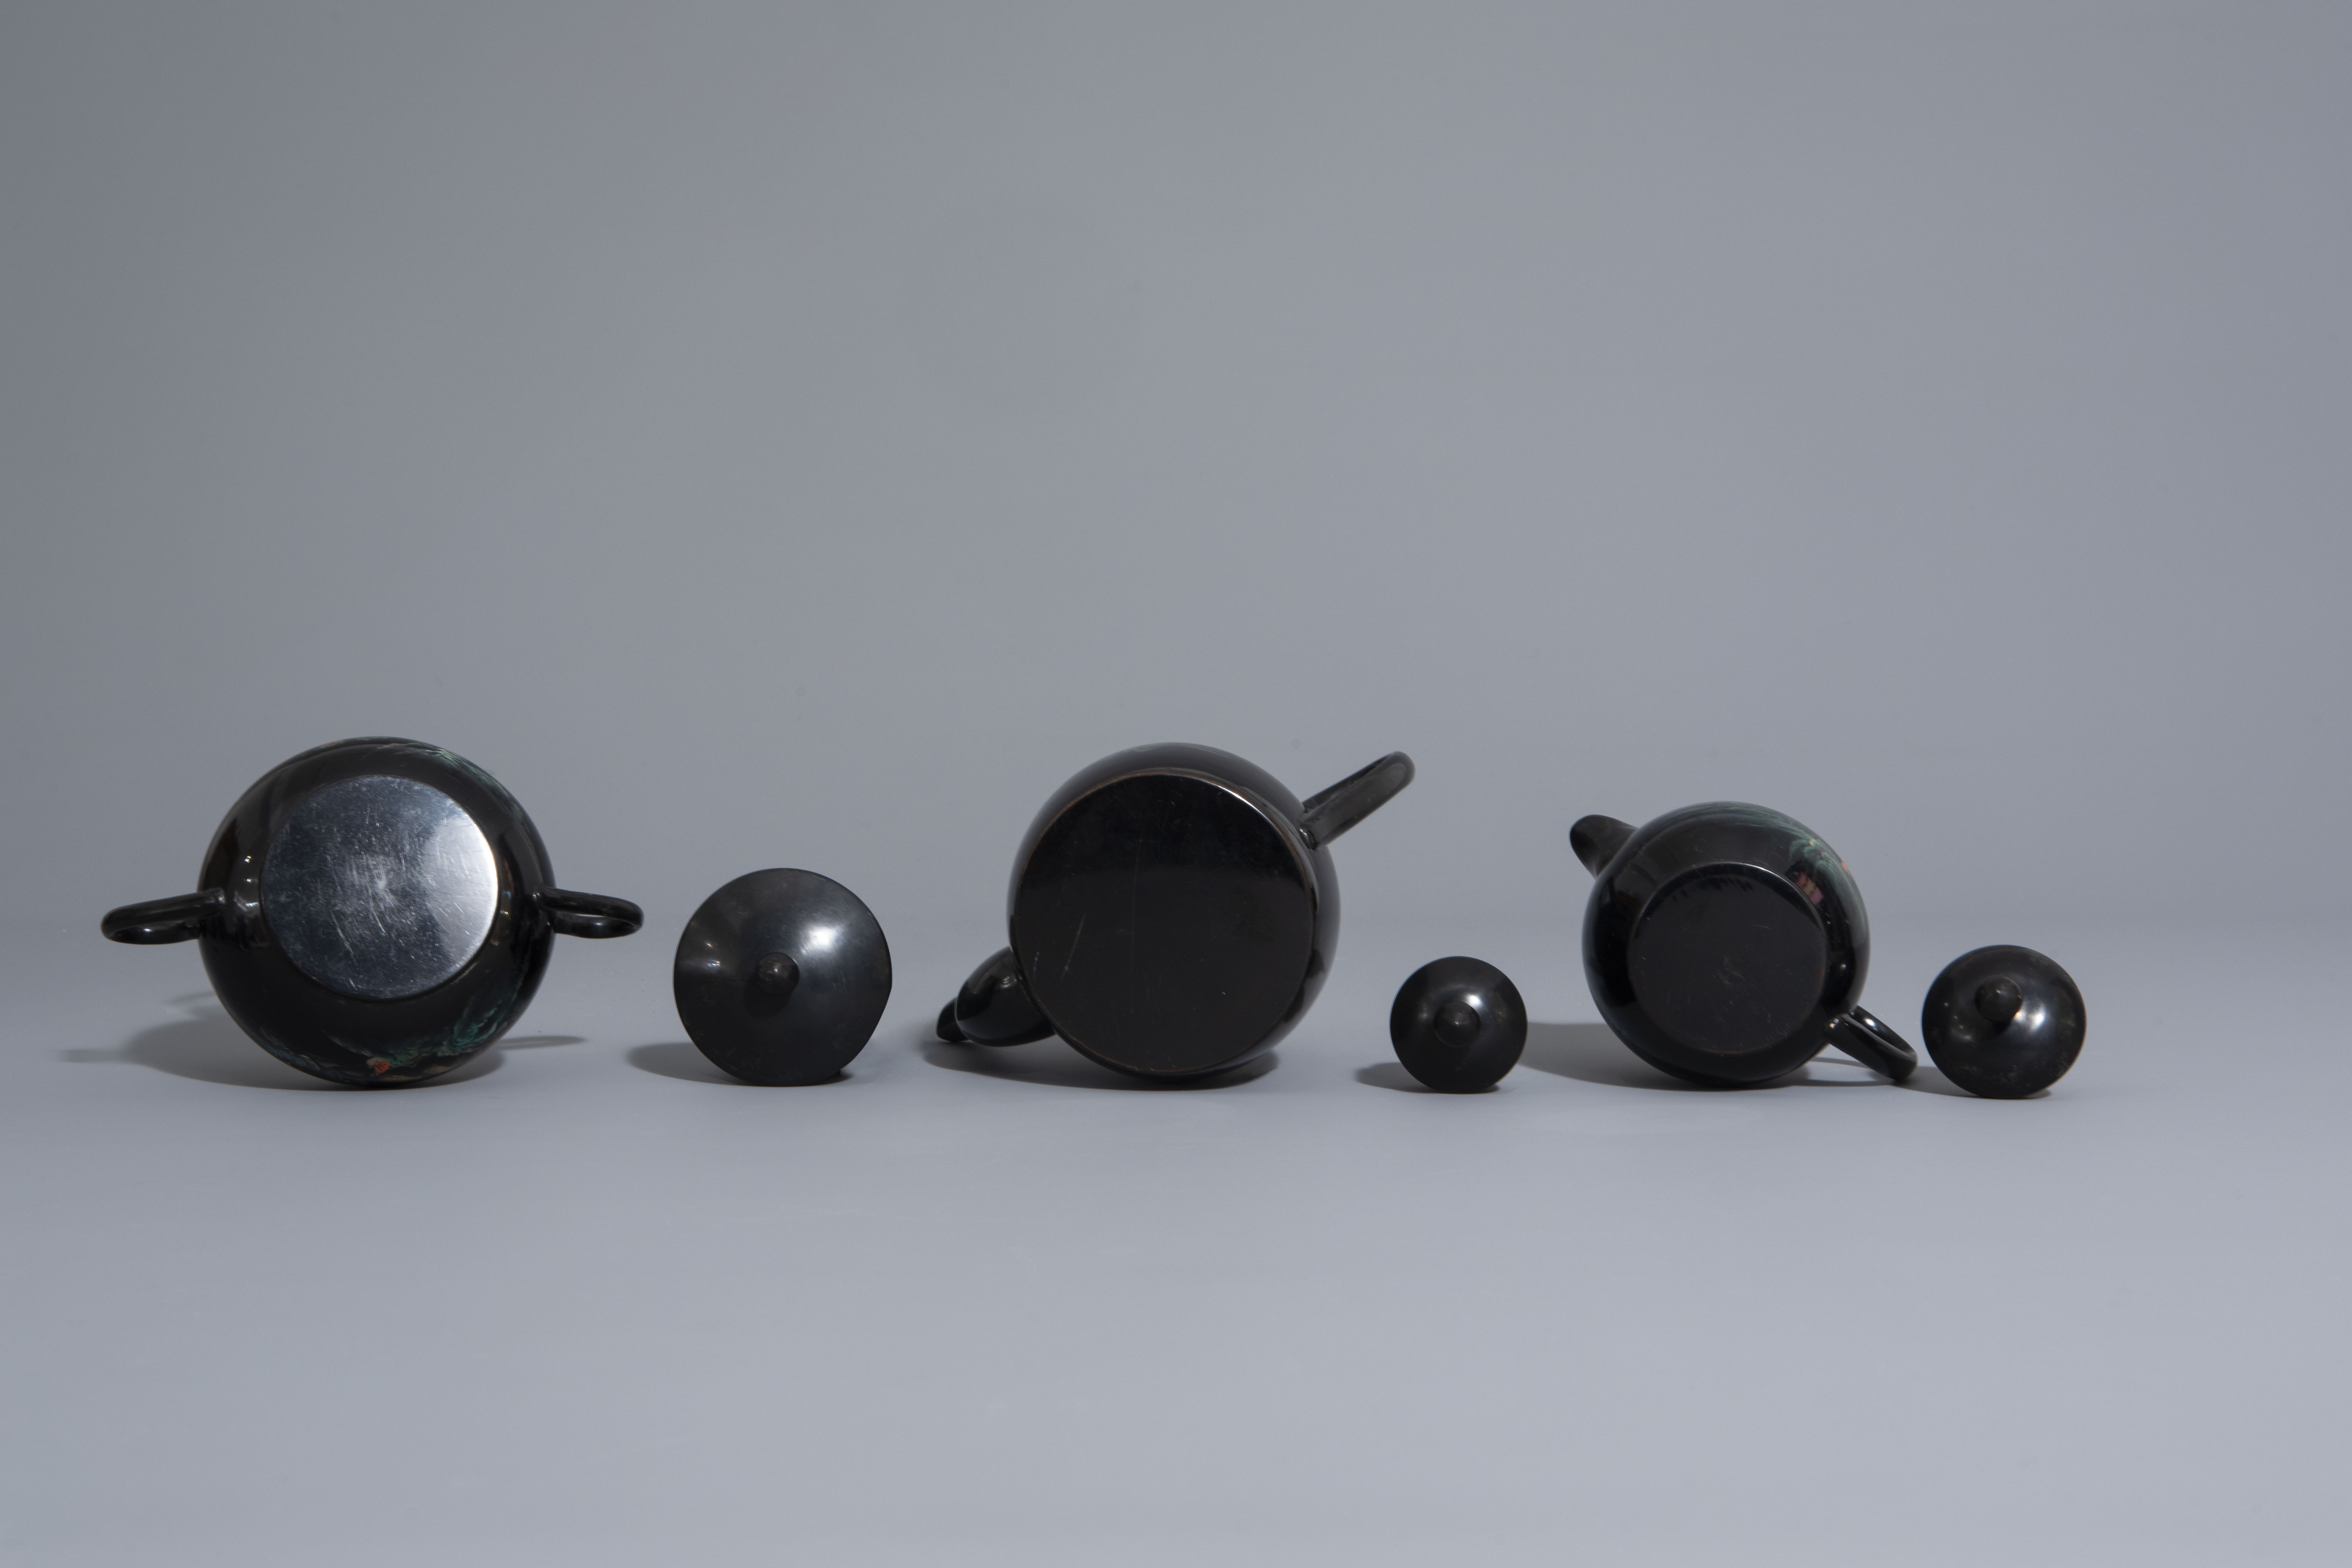 An extensive Chinese Foochow lacquer Shen Shao'an style coffee and tea service, 20th C. - Image 7 of 23